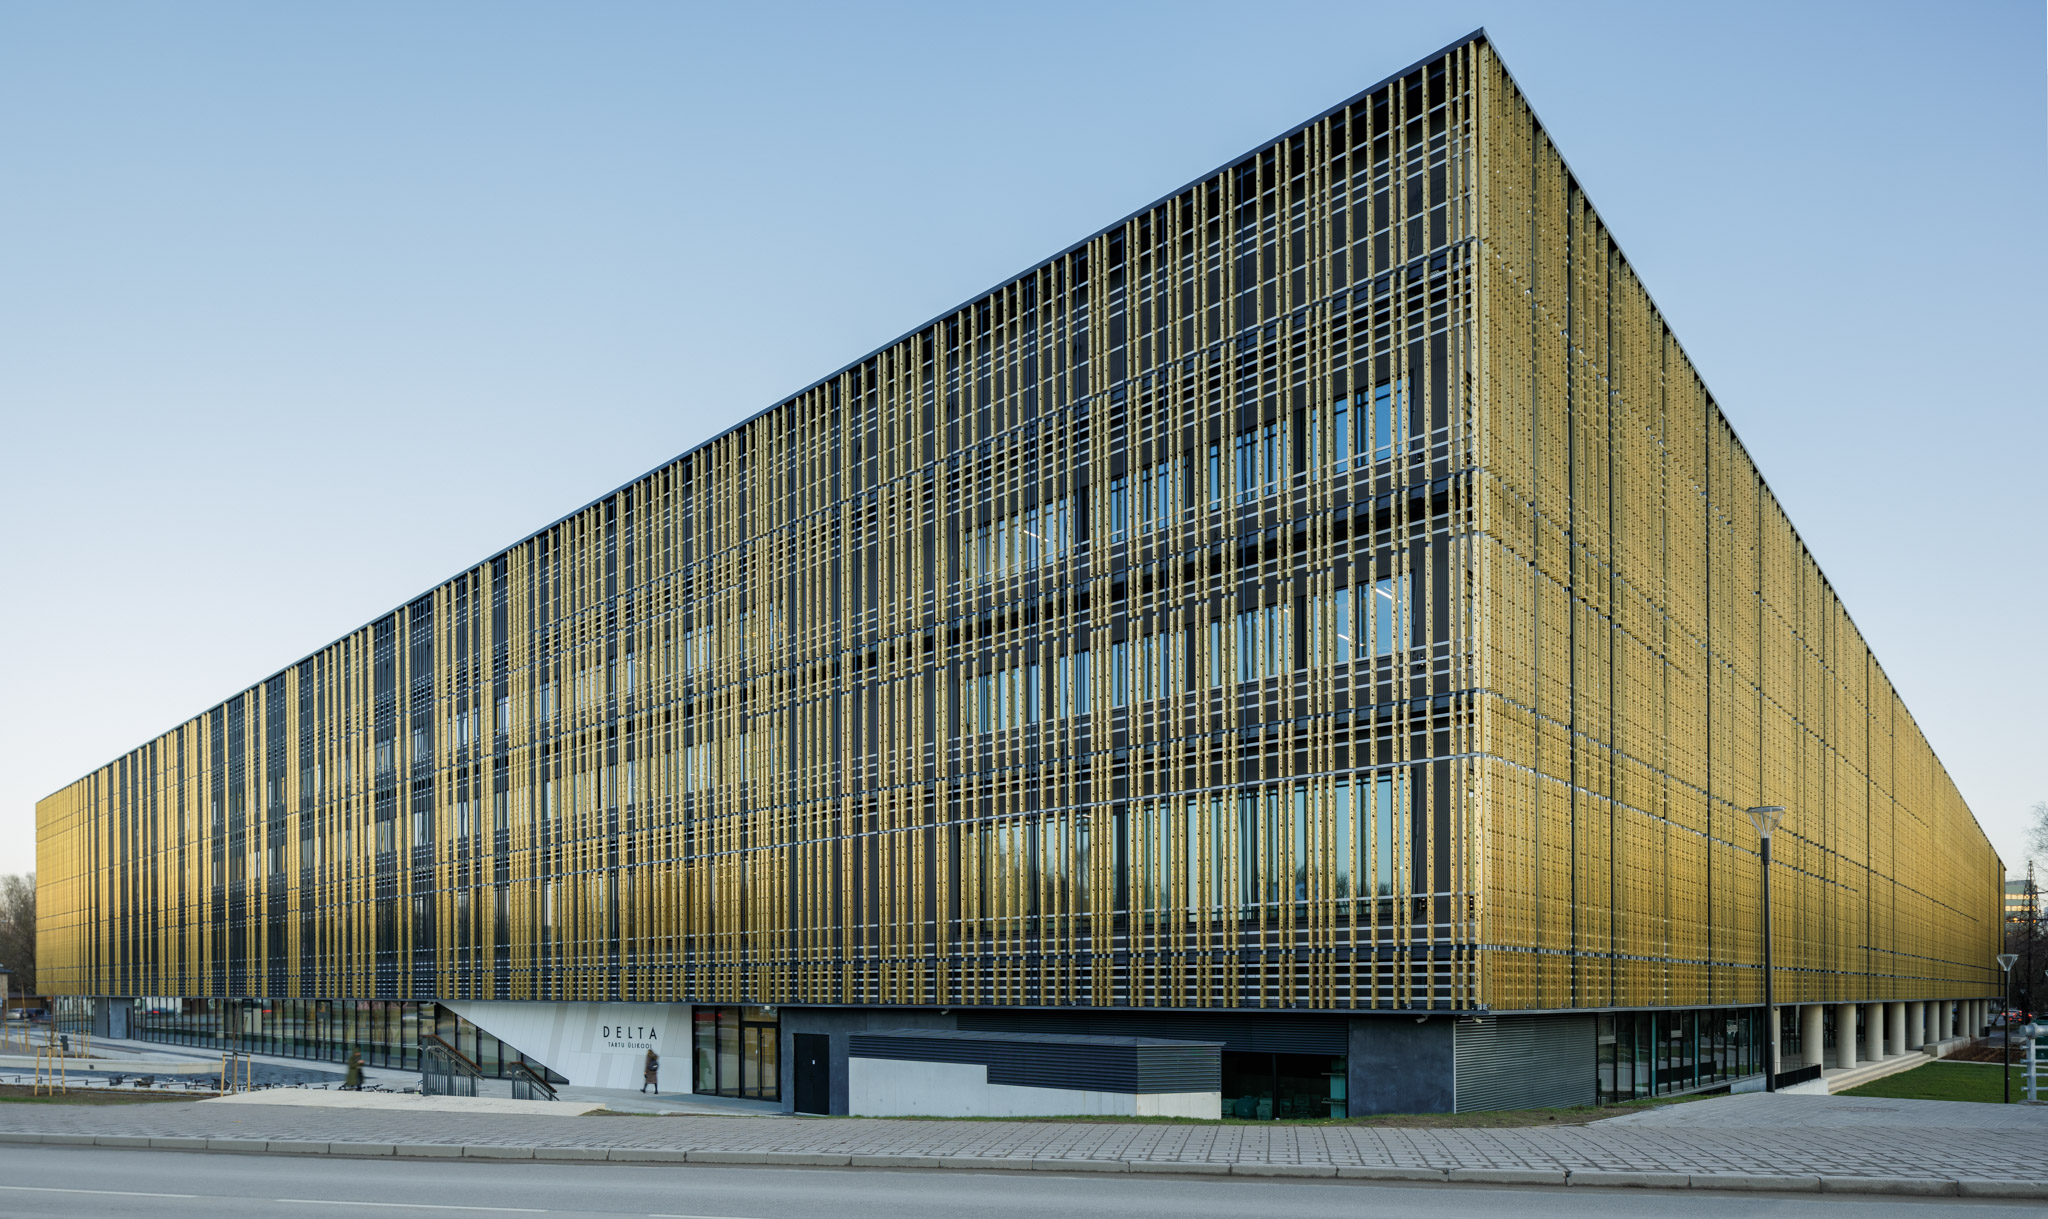 View of the facade of Tartu University in Estonia. The copper walls are gold-coloured and clad from Nordic Royal copper.